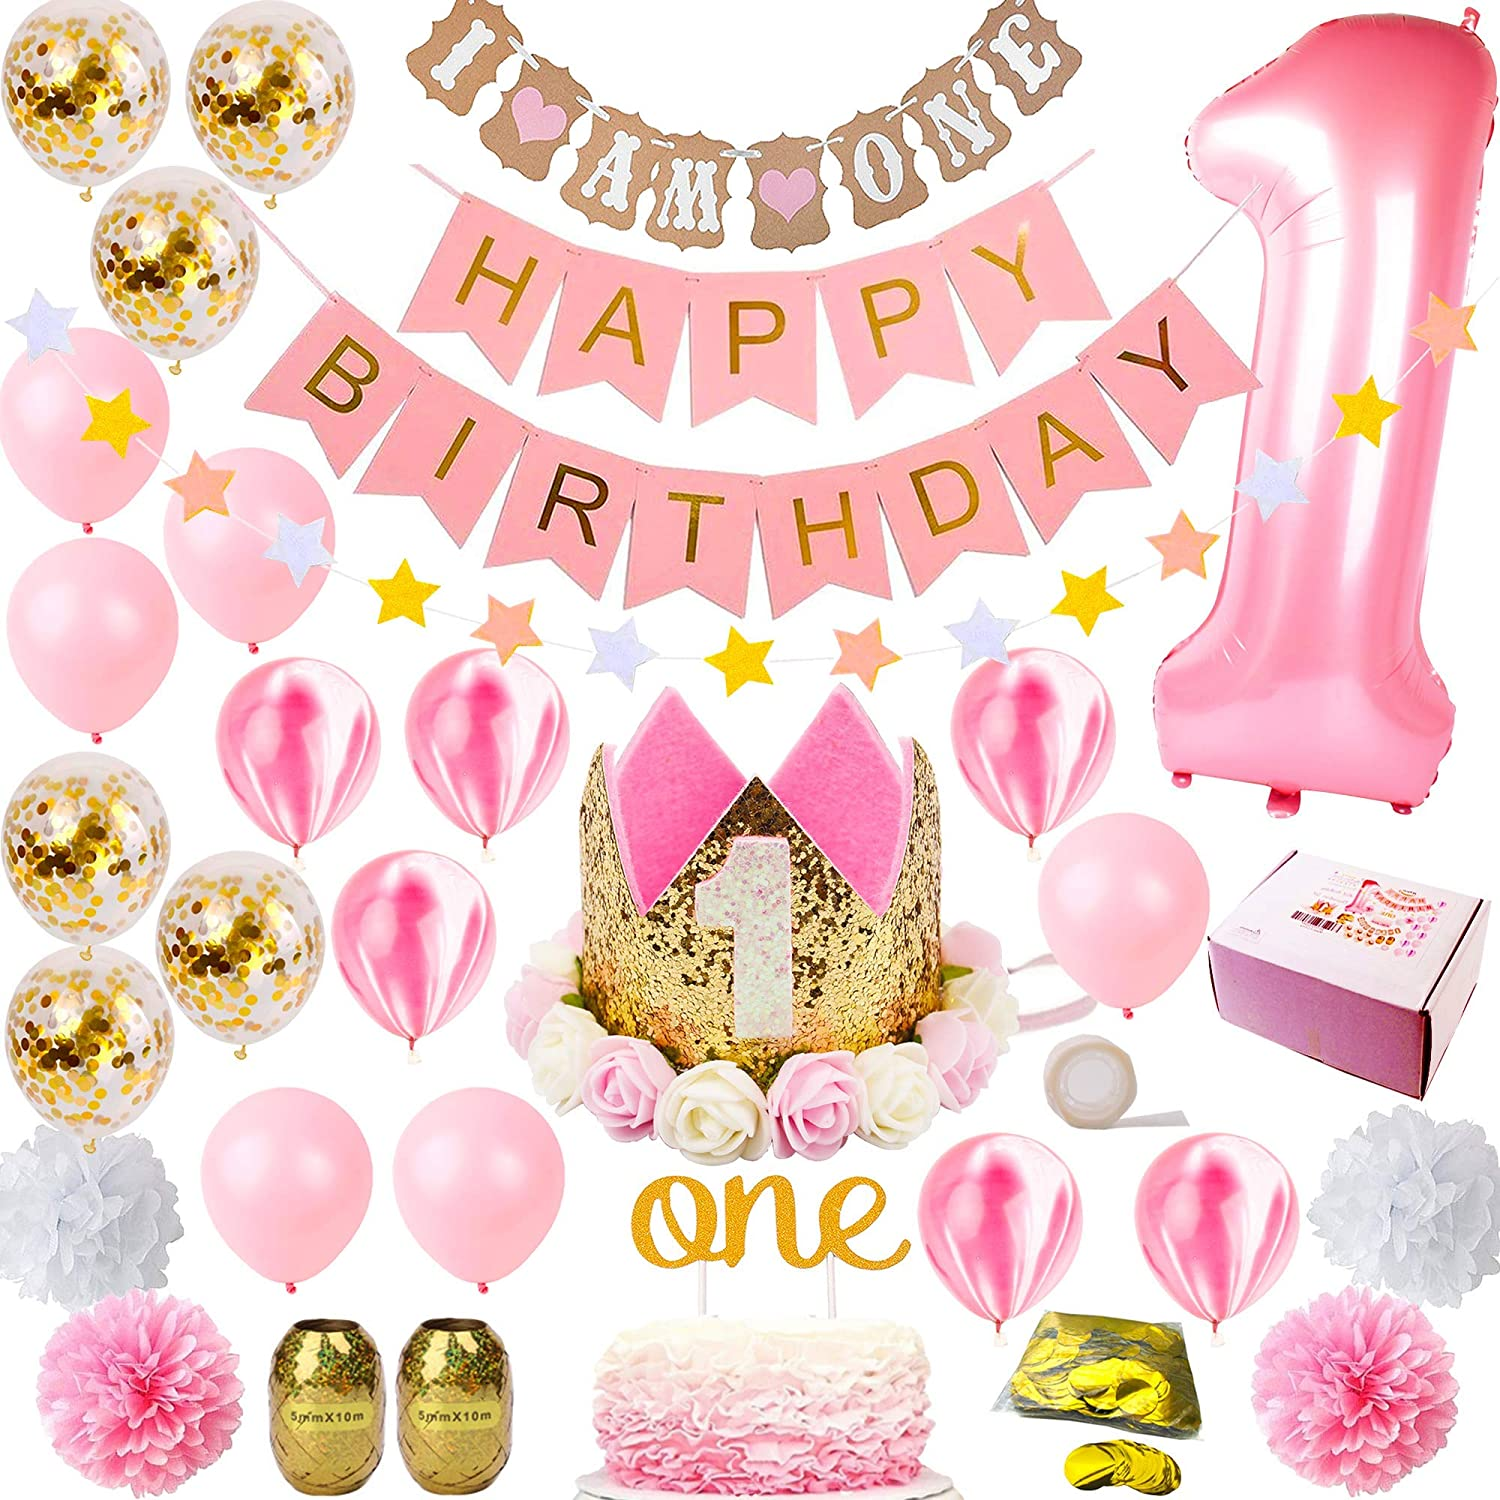 FunDeco Party 1st Birthday Decorations for Girl Mega Set | Princess Pink and Gold Girls Theme Kit | First Bday 1 Year Tiara Crown Hat, Cake Topper, Balloons, Happy Birthday Banner, More Decor Supplies